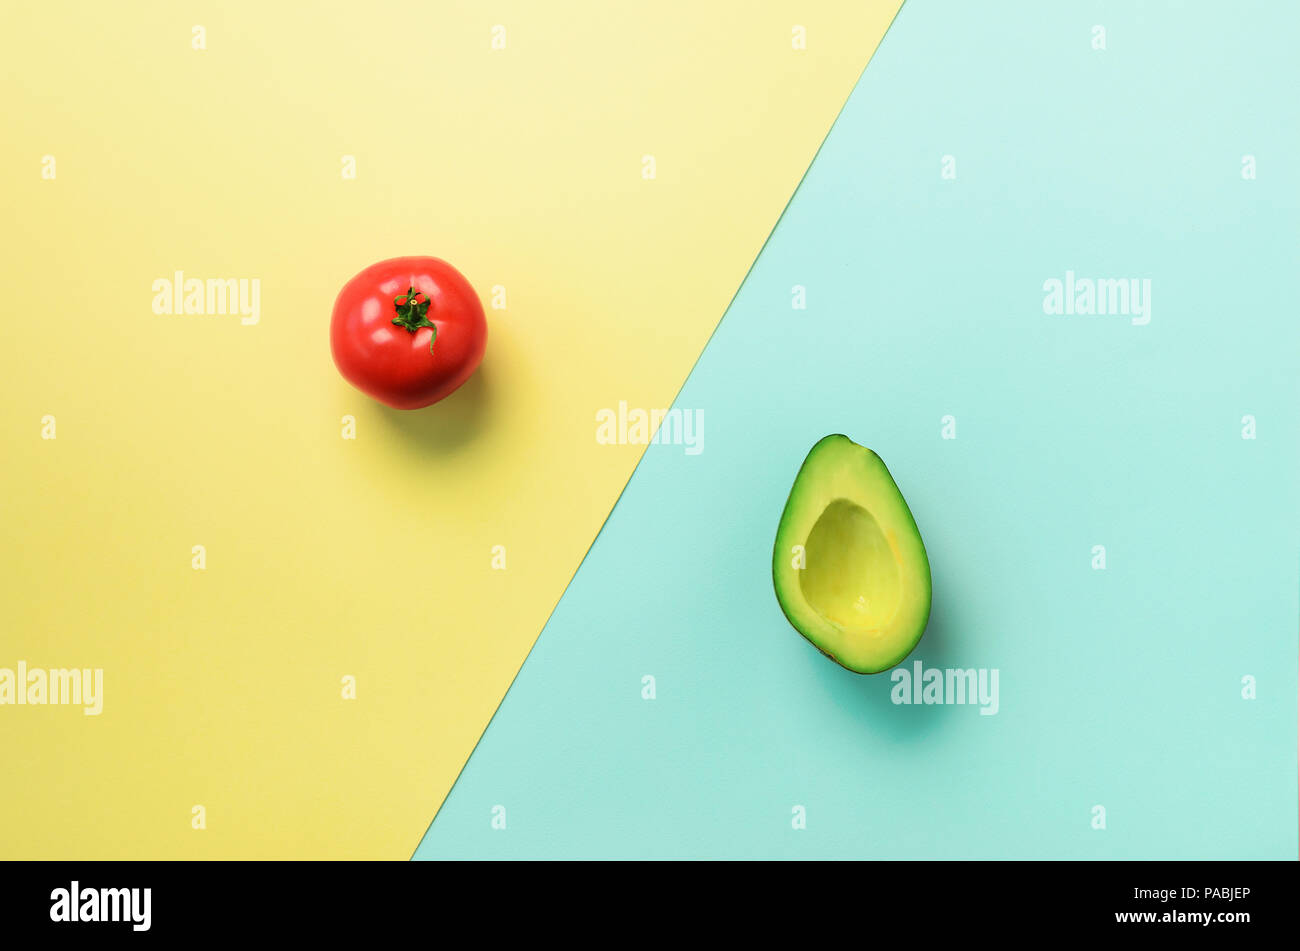 Green sliced avocado and red tomato on blue and yellow background. Top view. Pop art design, creative summer food concept. Minimal flat lay style Stock Photo